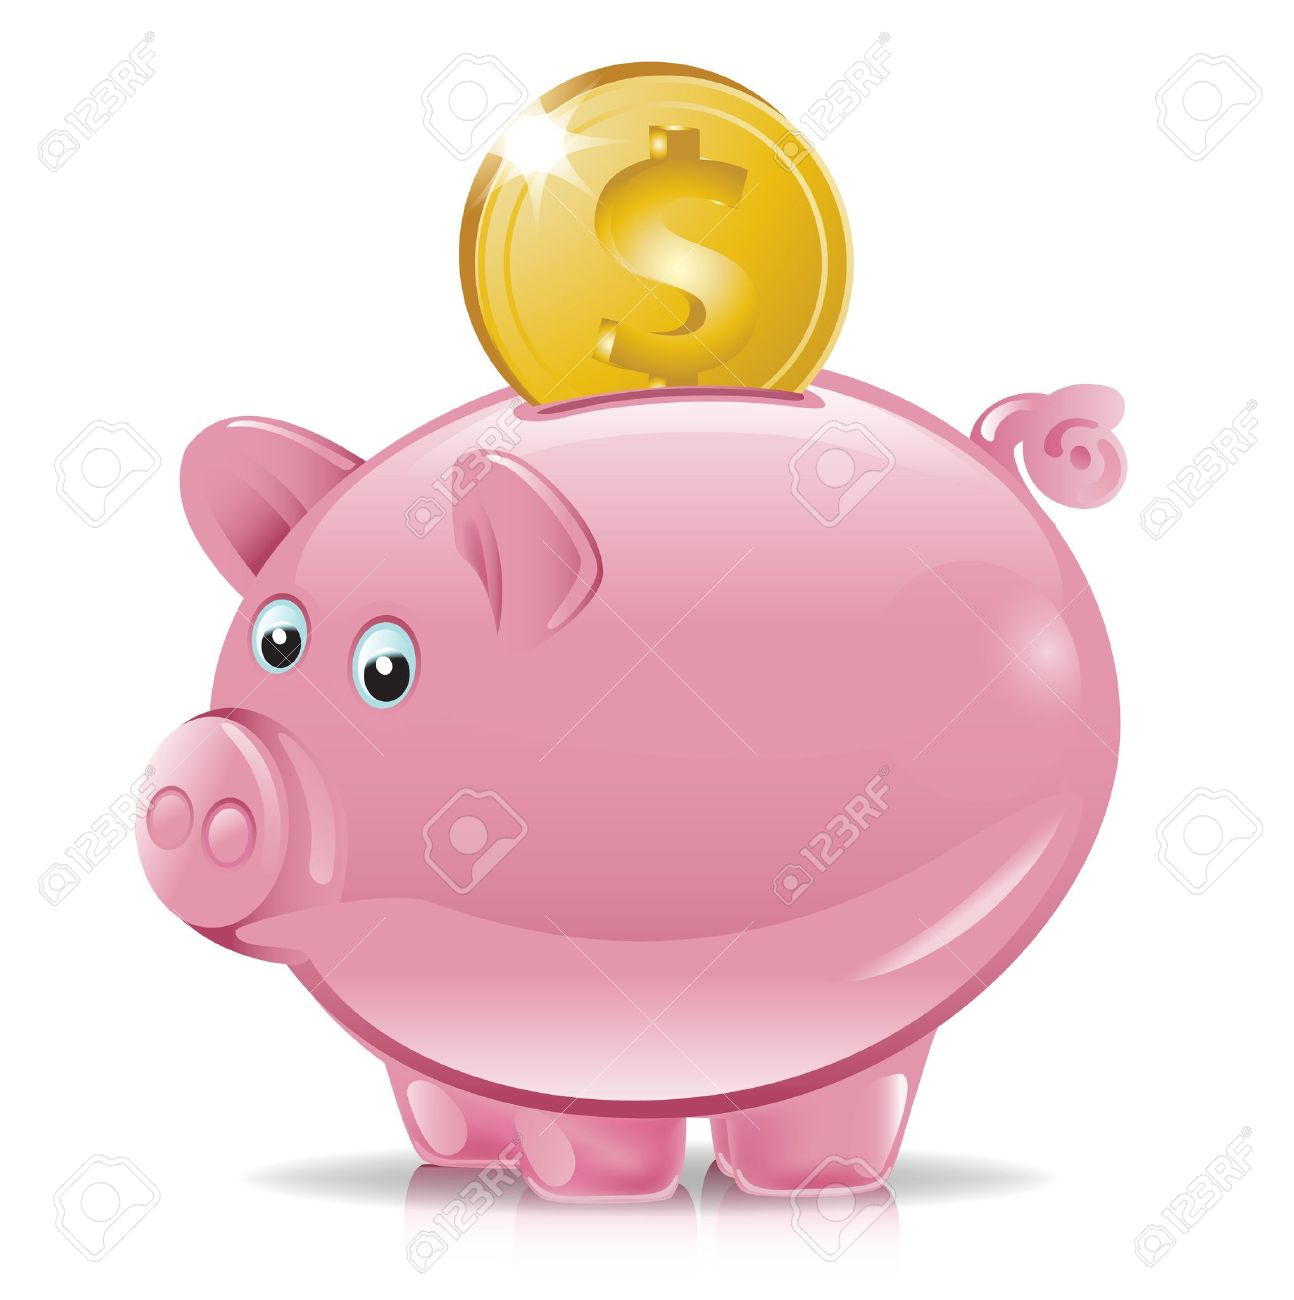 Piggy bank money clipart royalty free library Piggy Bank With Golden Coin Falling Royalty Free Cliparts, Vectors ... royalty free library